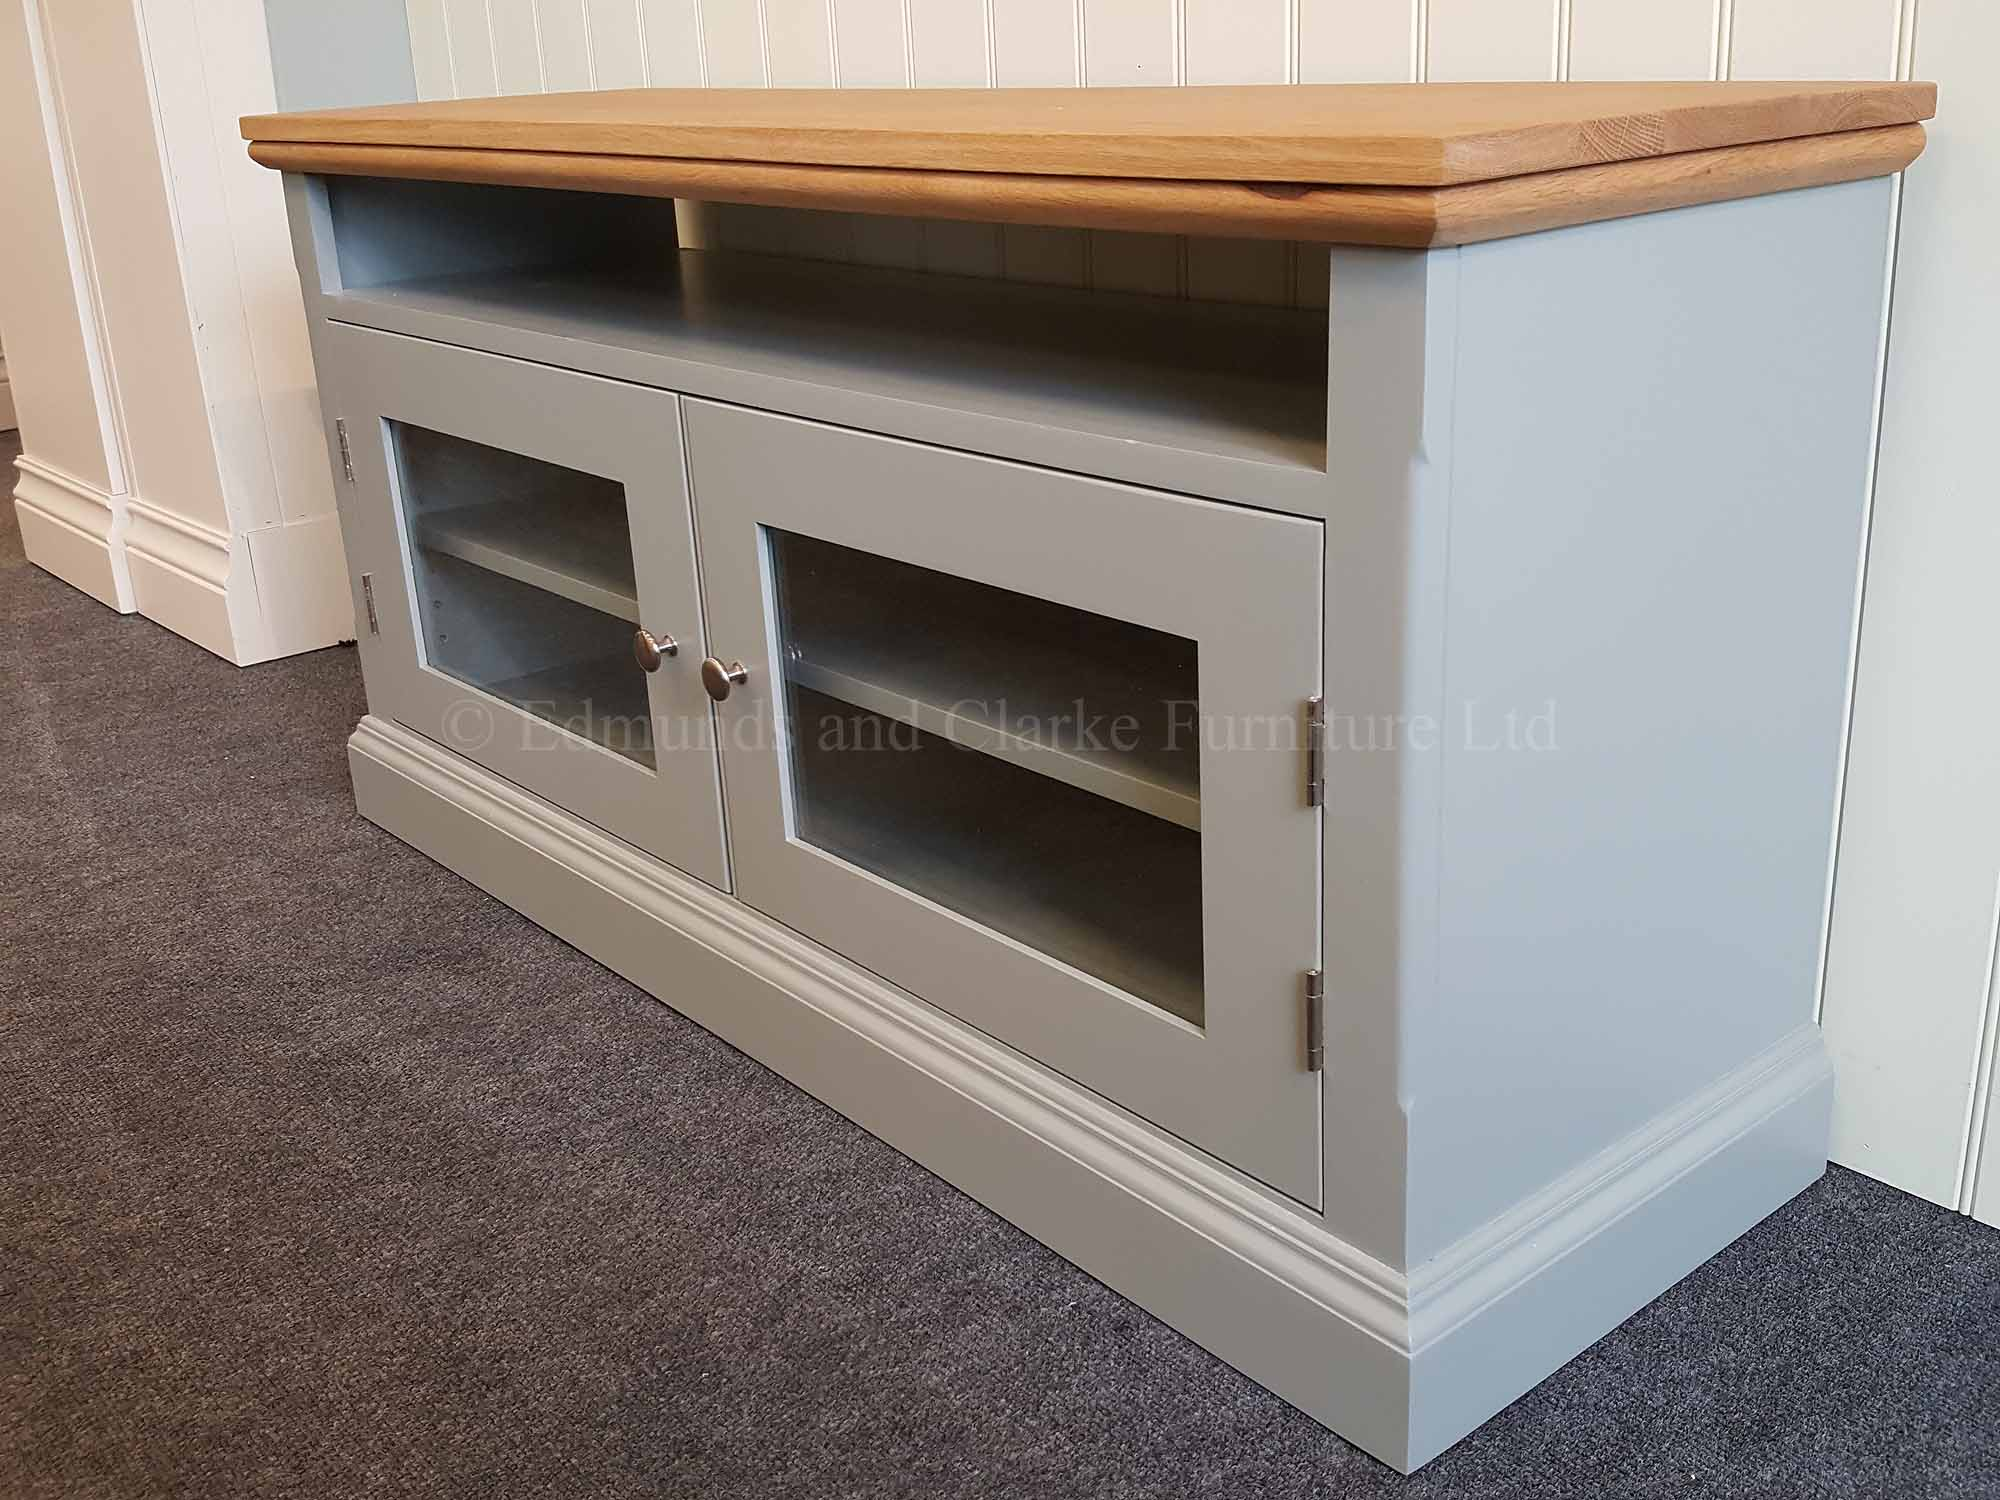 Edmunds painted tv unit two glazed doors with space for soundbar